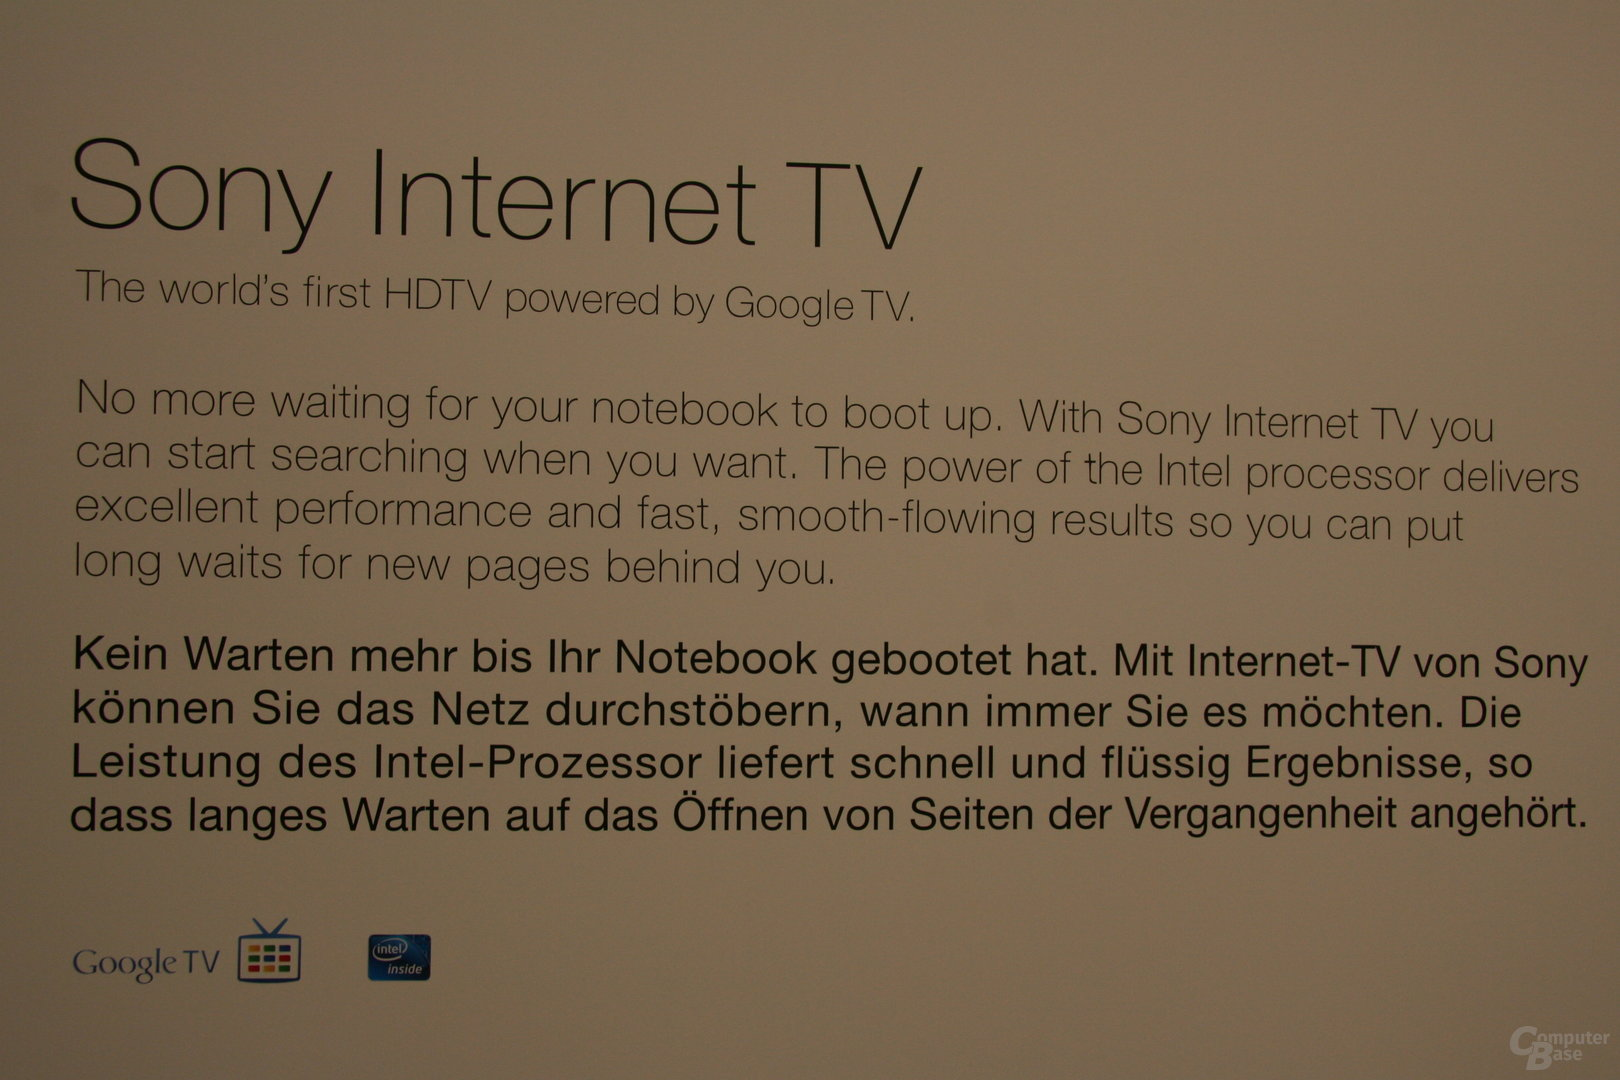 Sony Internet TV